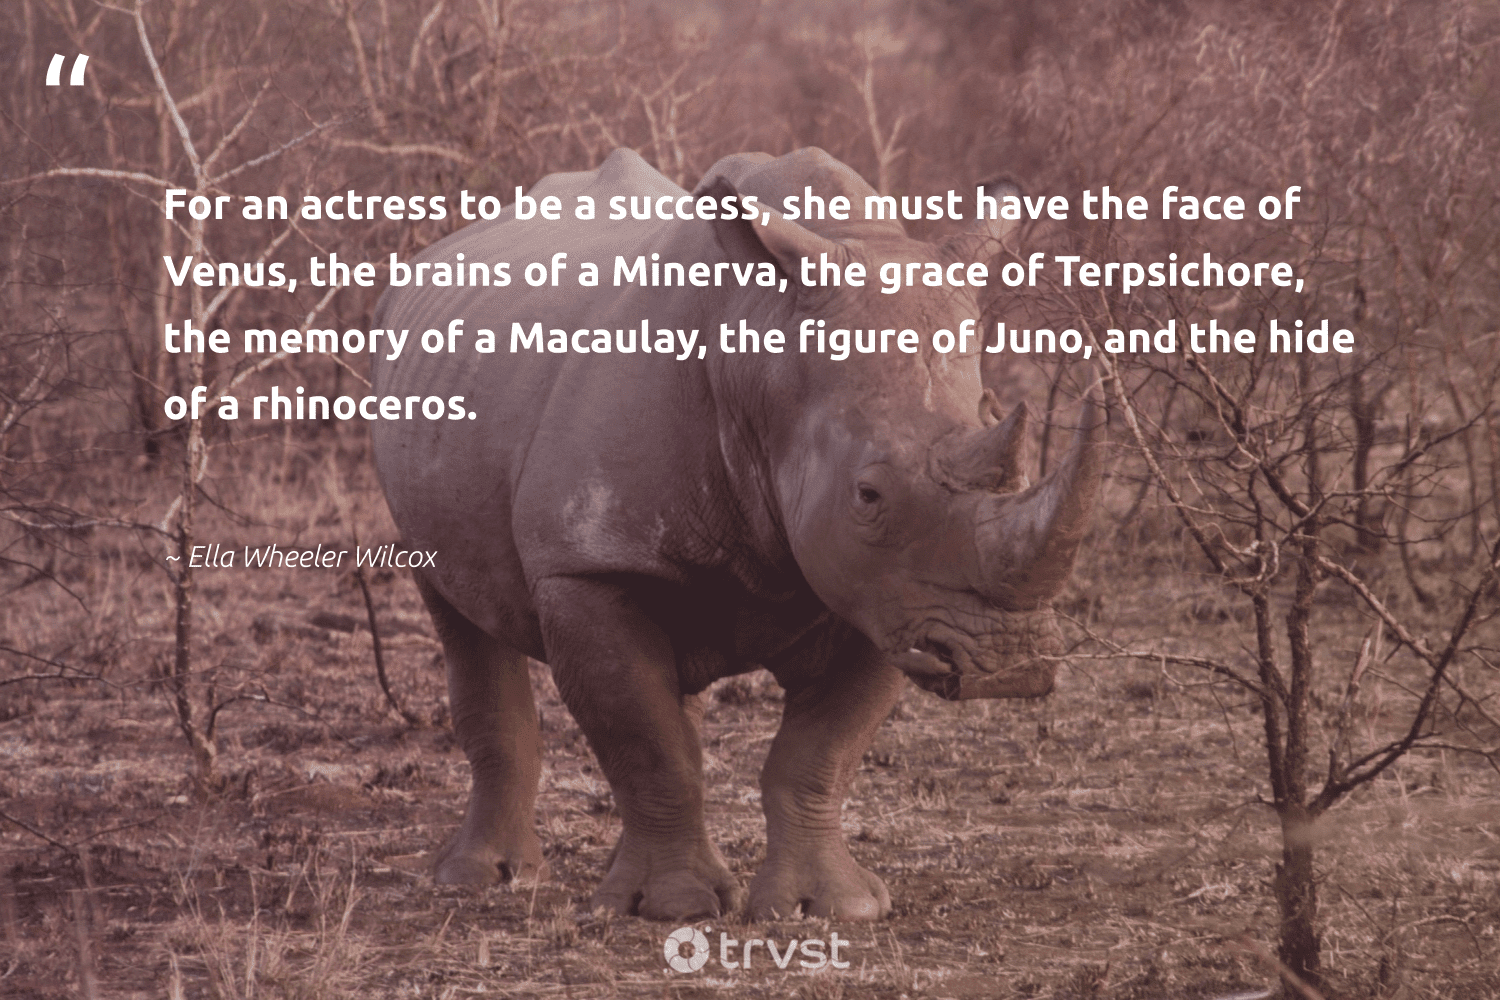 """""""For an actress to be a success, she must have the face of Venus, the brains of a Minerva, the grace of Terpsichore, the memory of a Macaulay, the figure of Juno, and the hide of a rhinoceros.""""  - Ella Wheeler Wilcox #trvst #quotes #success #rhinoceros #motivational #protectnature #futureofwork #thinkgreen #goals #biodiversity #begreat #collectiveaction"""